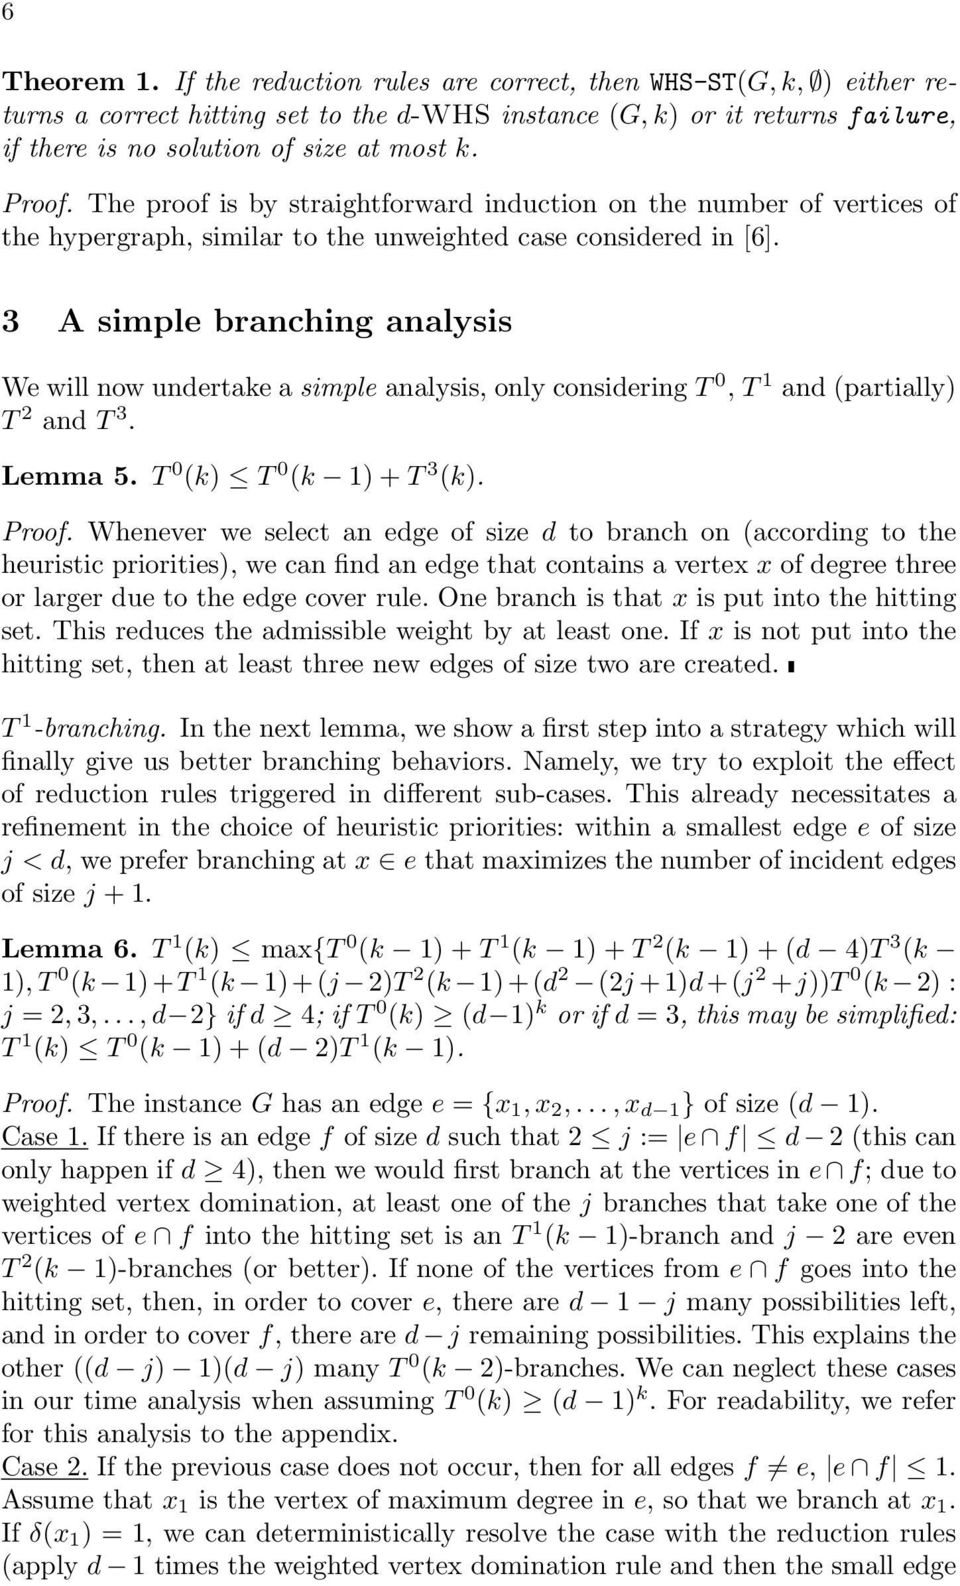 3 A simple branching analysis We will now unertake a simple analysis, only consiering T 0, T 1 an (partially) T 2 an T 3. Lemma 5. T 0 (k) T 0 (k 1) + T 3 (k). Proof.